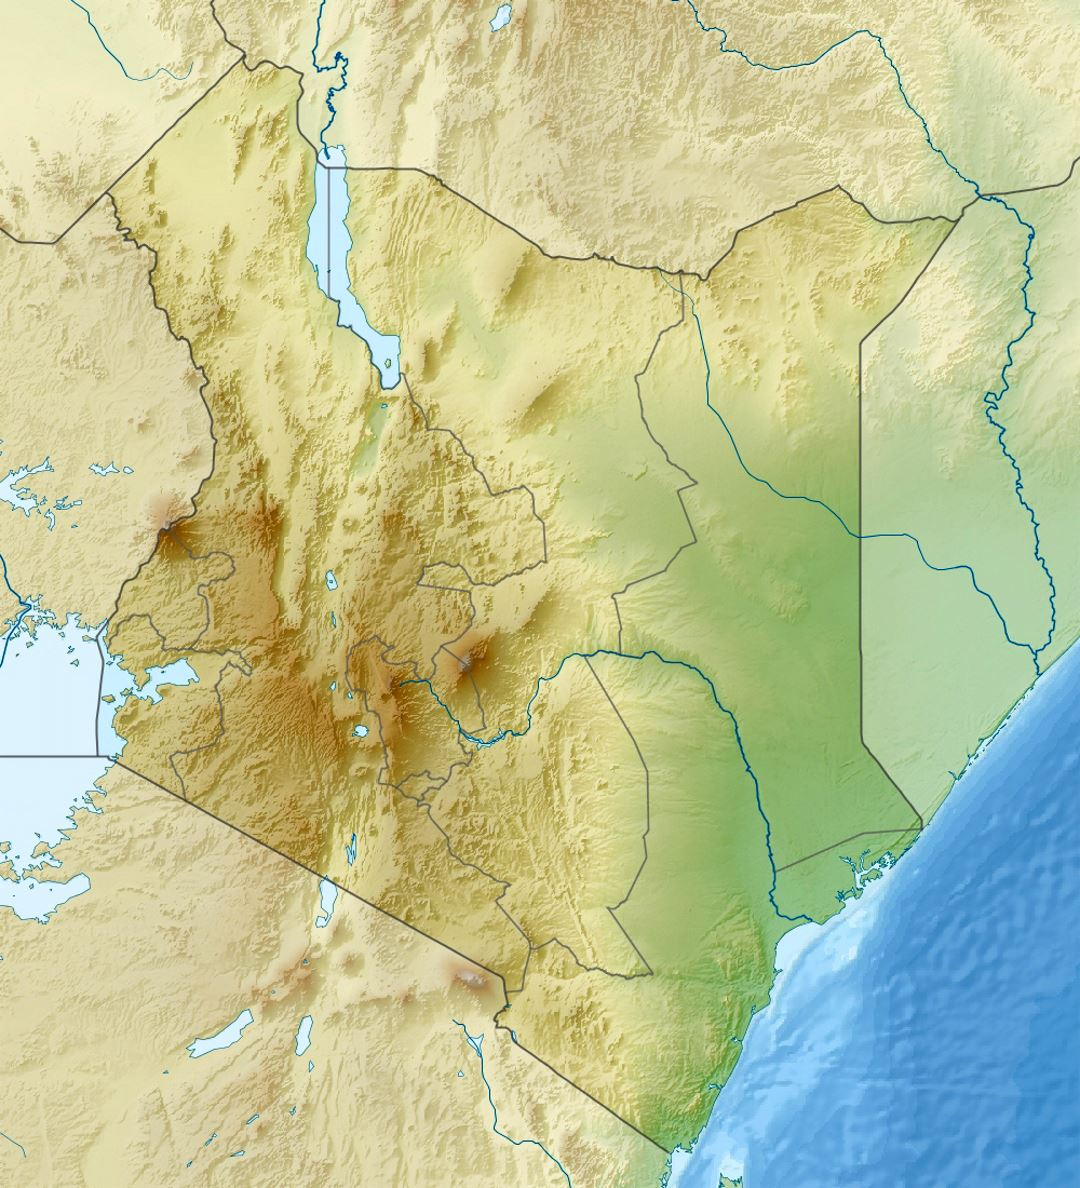 Detailed relief map of Kenya